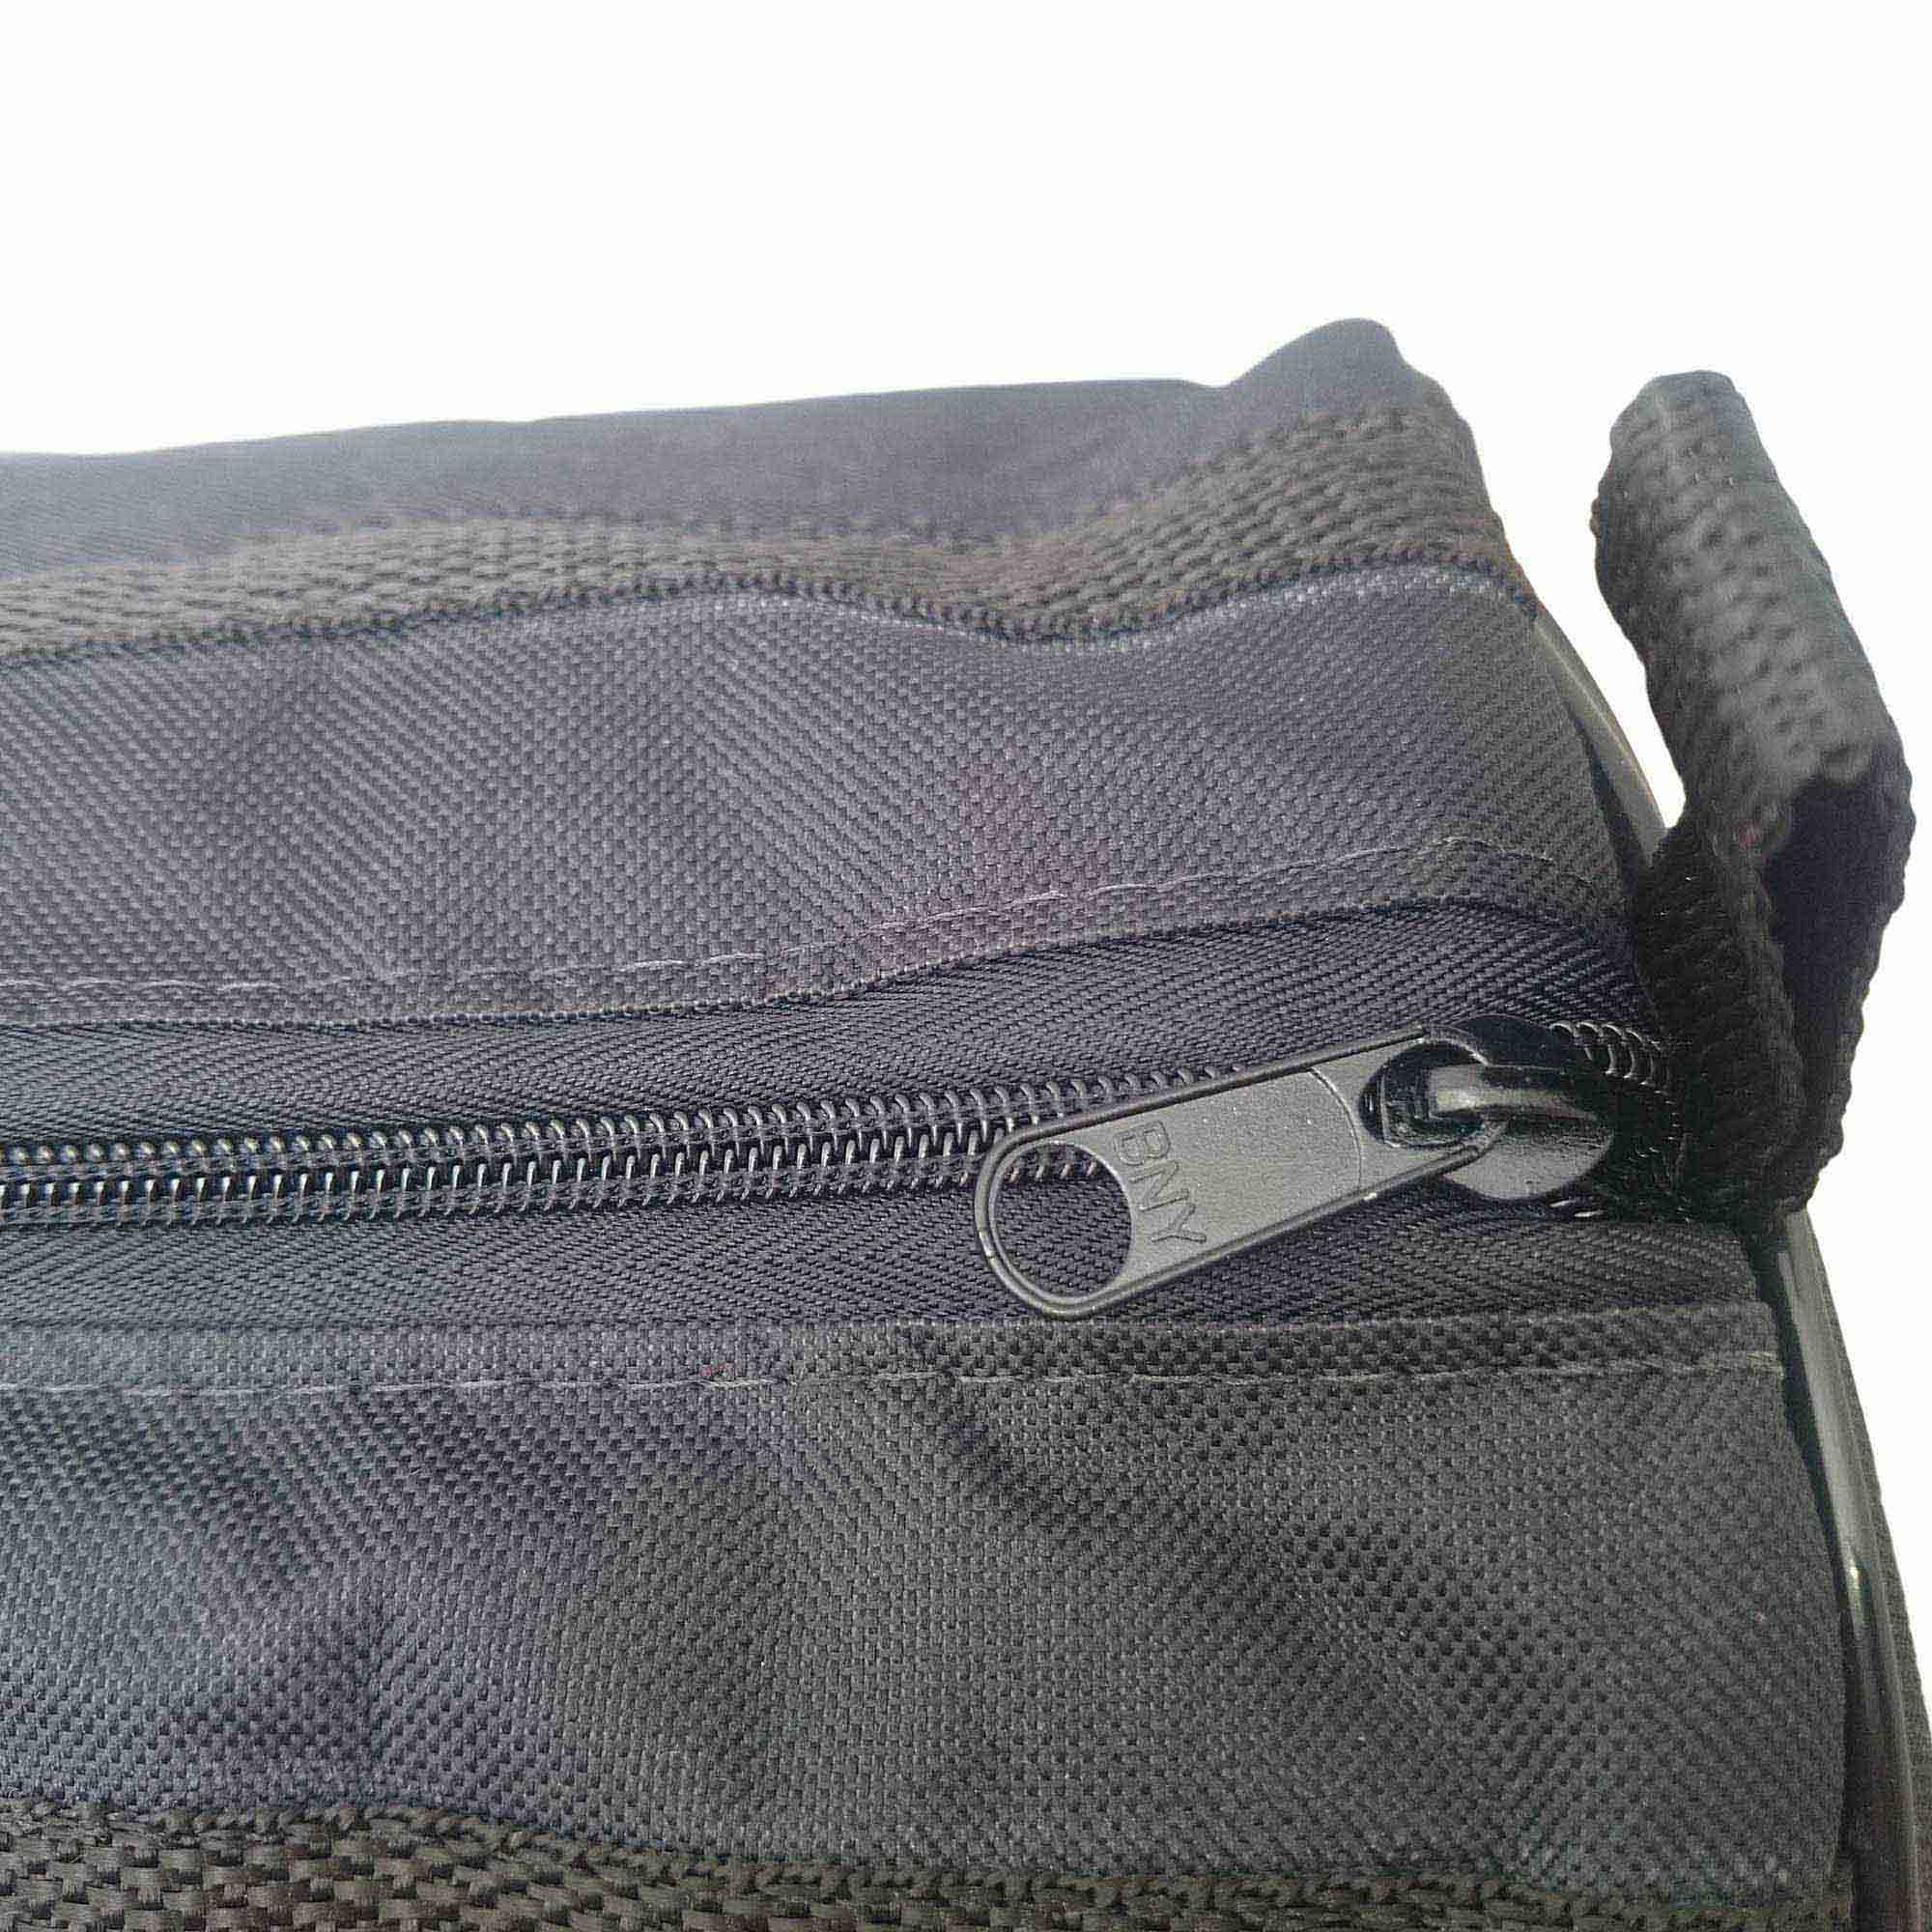 kit bag de ferragens + bag de pratos